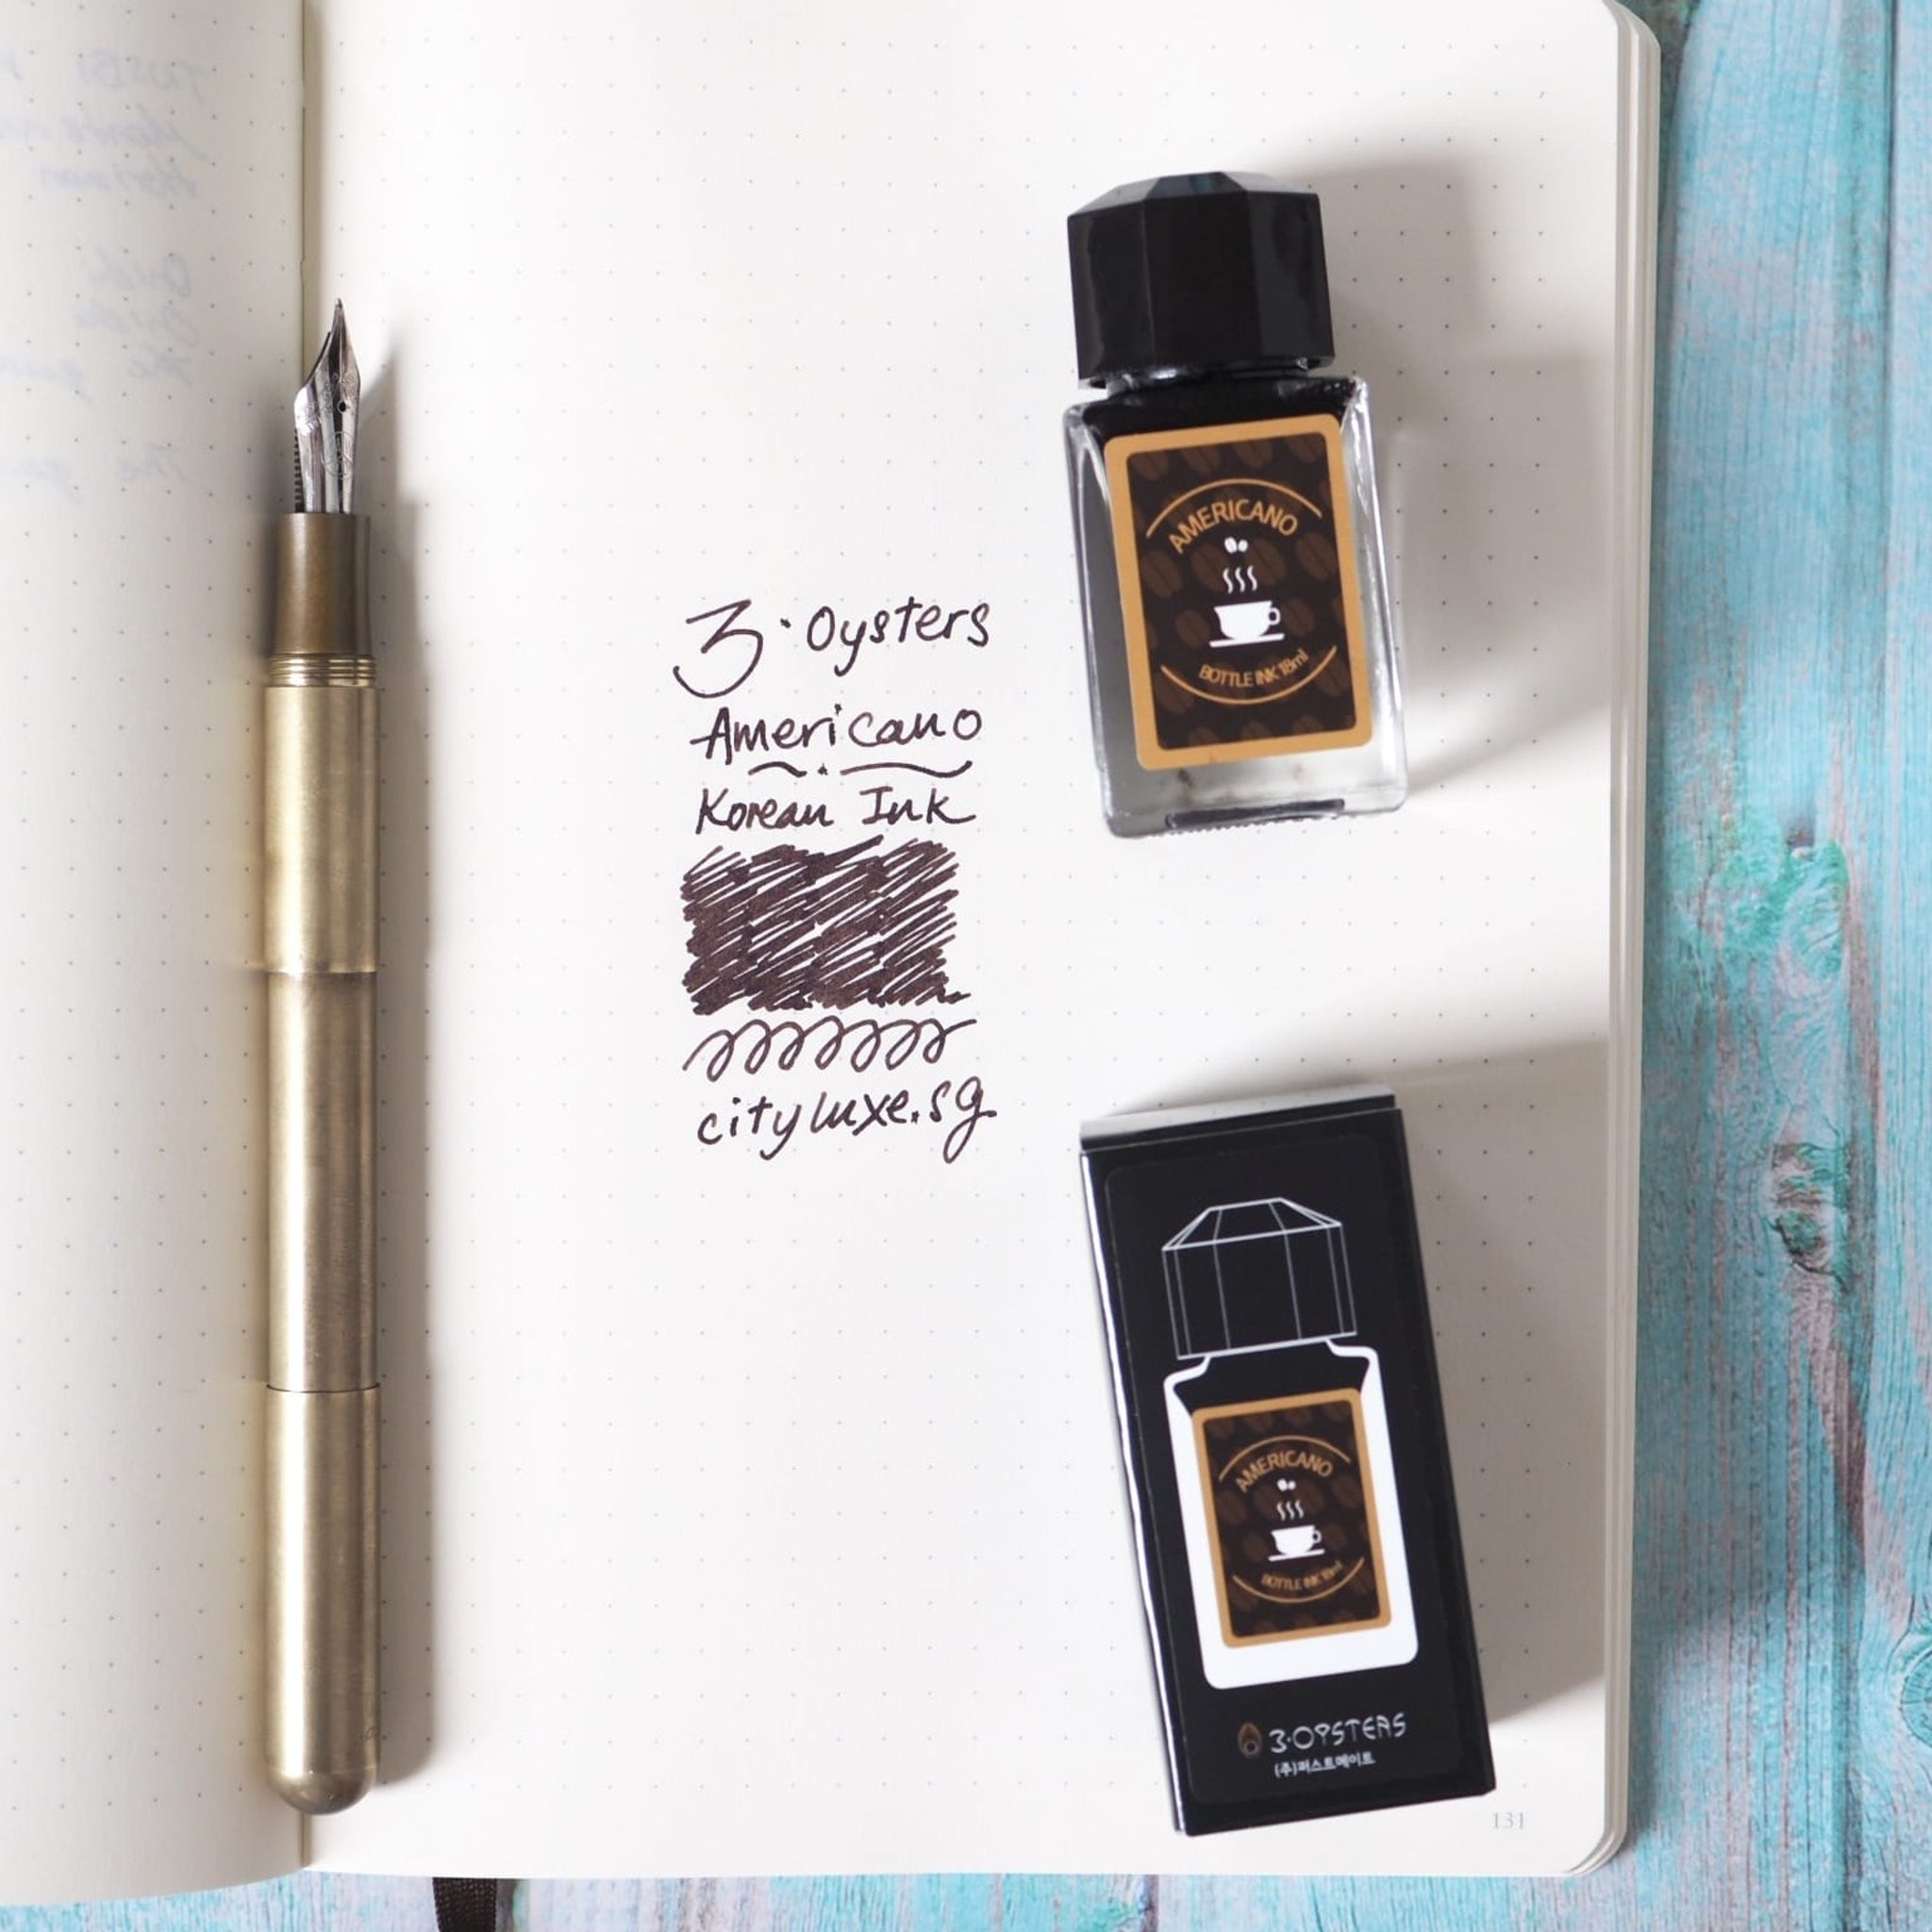 3 Oysters 18ml Ink Bottle Special Edition Americano